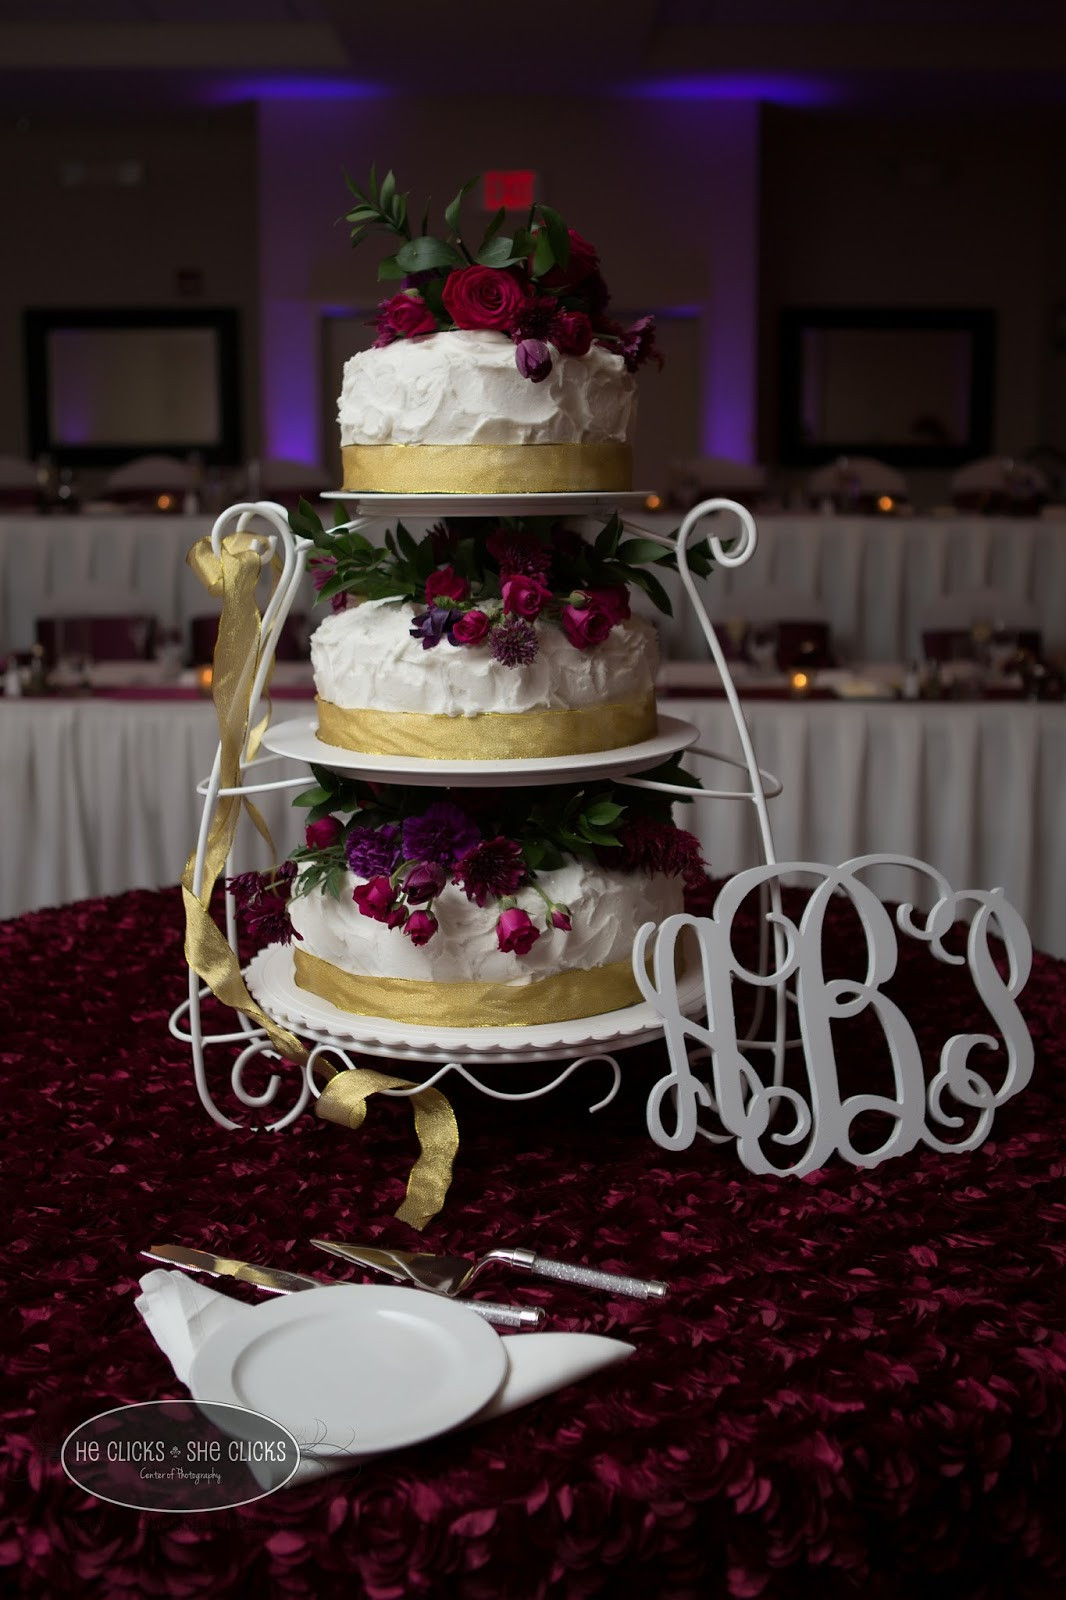 Wedding Cakes Bloomington Il  He s She s Center of graphy Ashton and